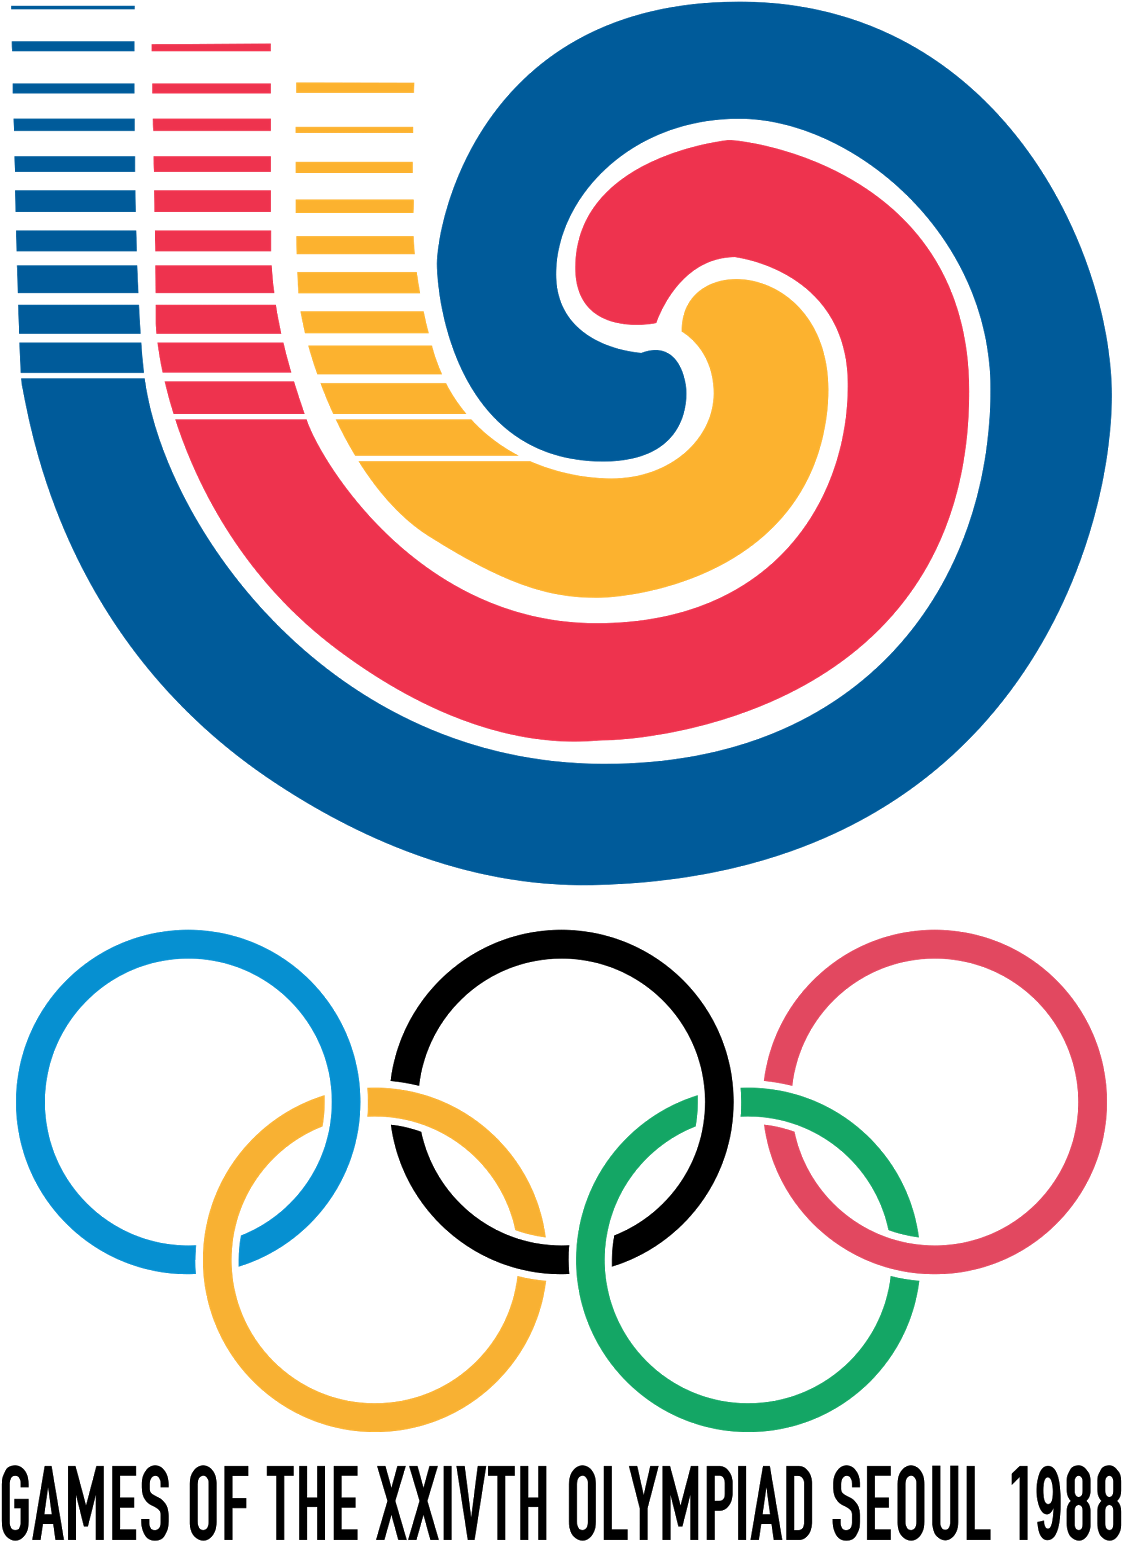 45 Olympic Logos And Symbols From 1924 To - 1988 Summer ...